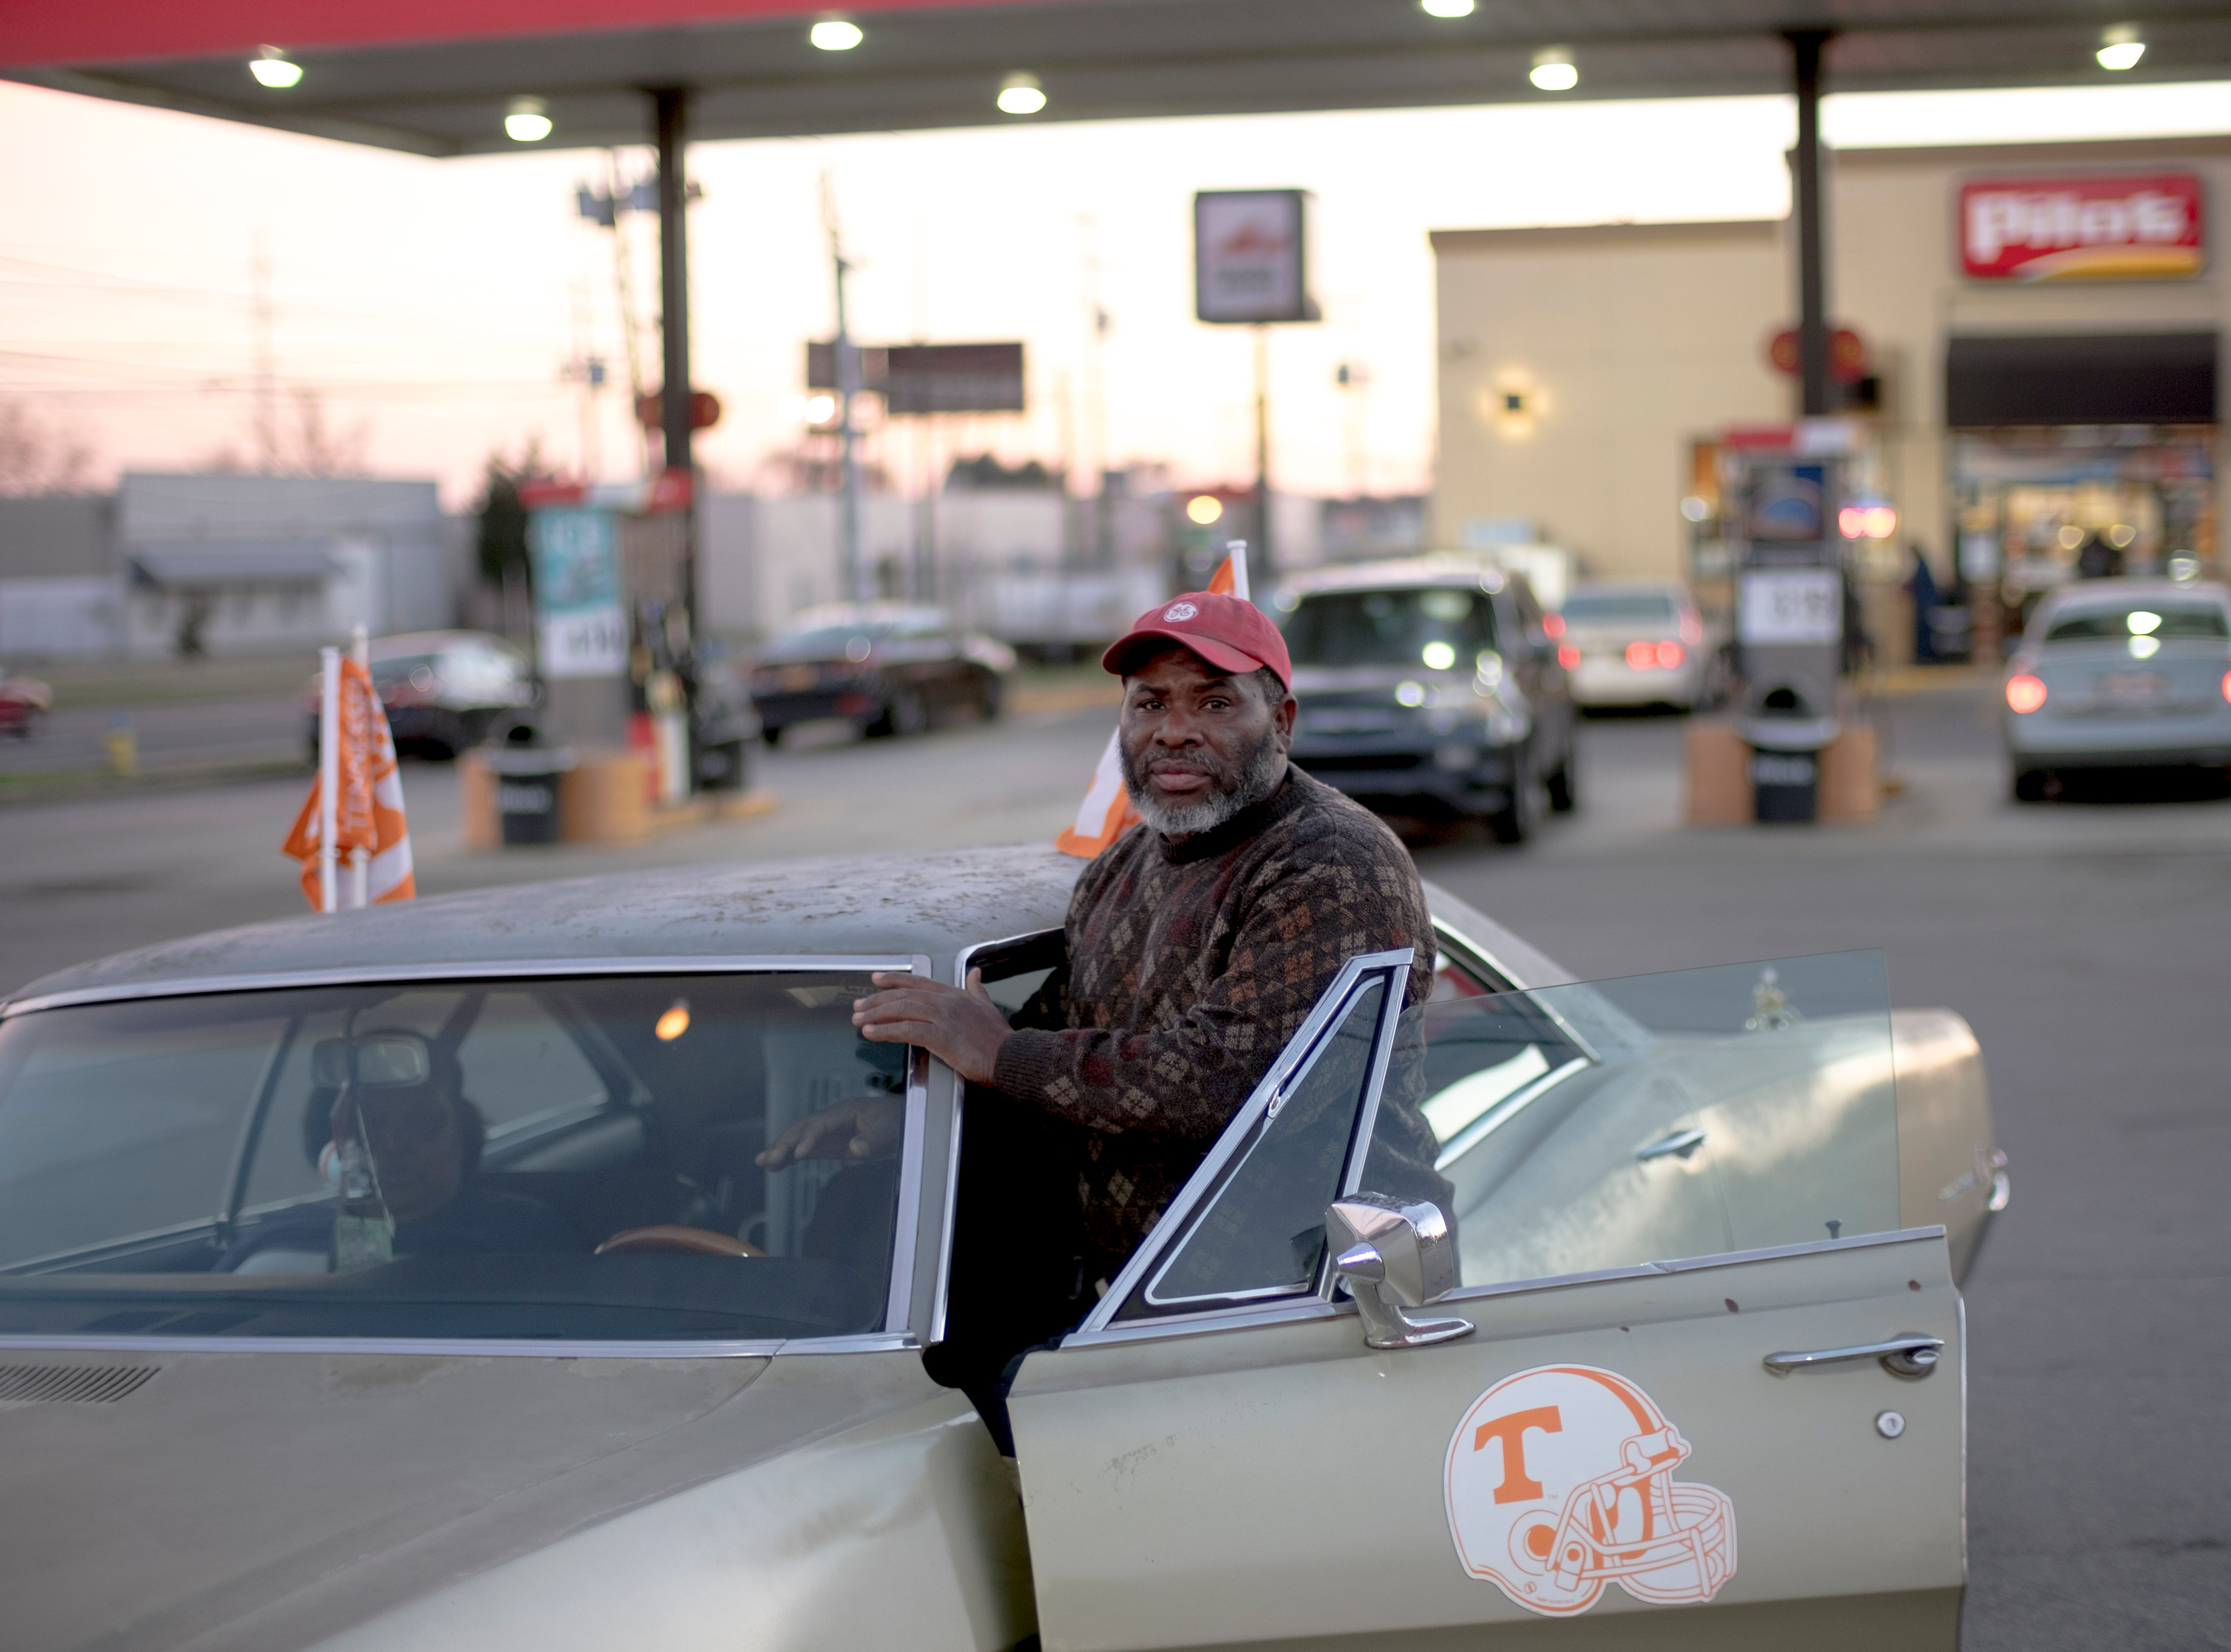 Greg Bentley poses with his newly purchased 1968 Buick Wildcat which he plans to refurbish and paint maroon at the Pilot on Western and Middlebrook in Knoxville, Tennessee on Saturday, March 16, 2019. Bentley says he enjoys classic cars, owning a 1986 Chevrolet C-10 and a 1972 Plymouth Fury III, which is wife Annie drives. A dedicated Vol fan, Bentley also decorates his cars with Tennessee decals.